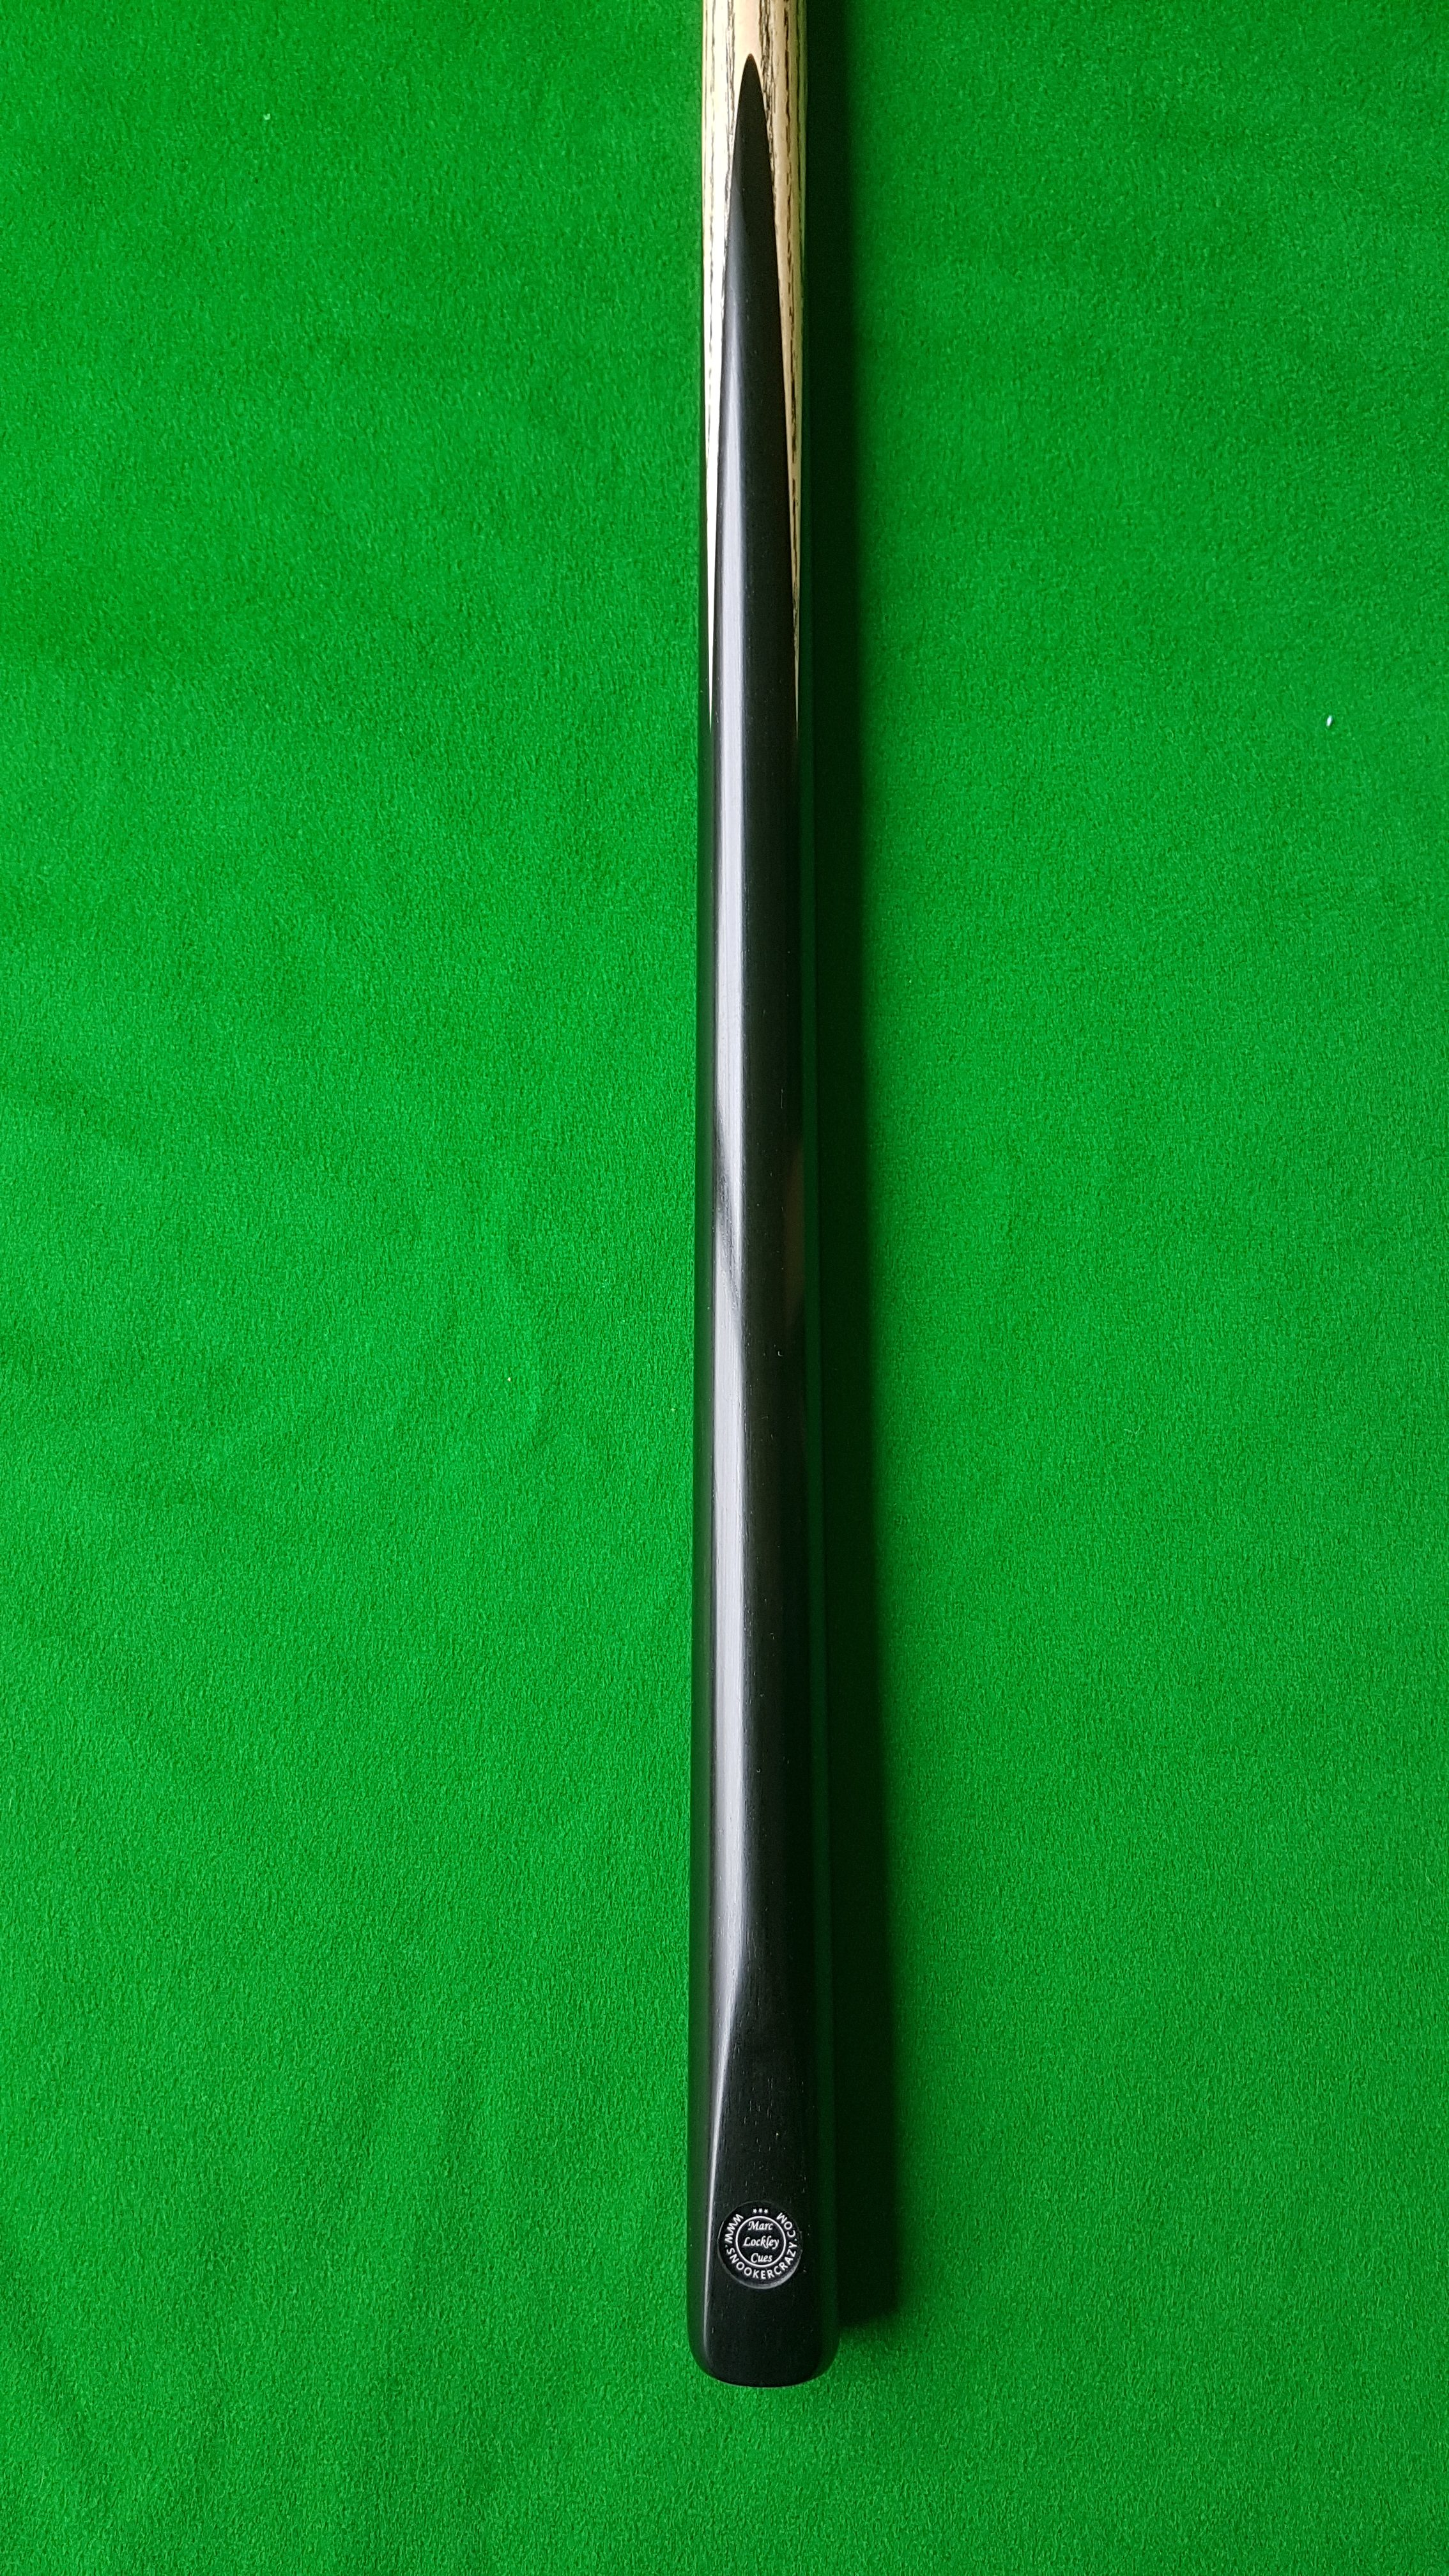 56 1 Piece Ebony Snooker Cue